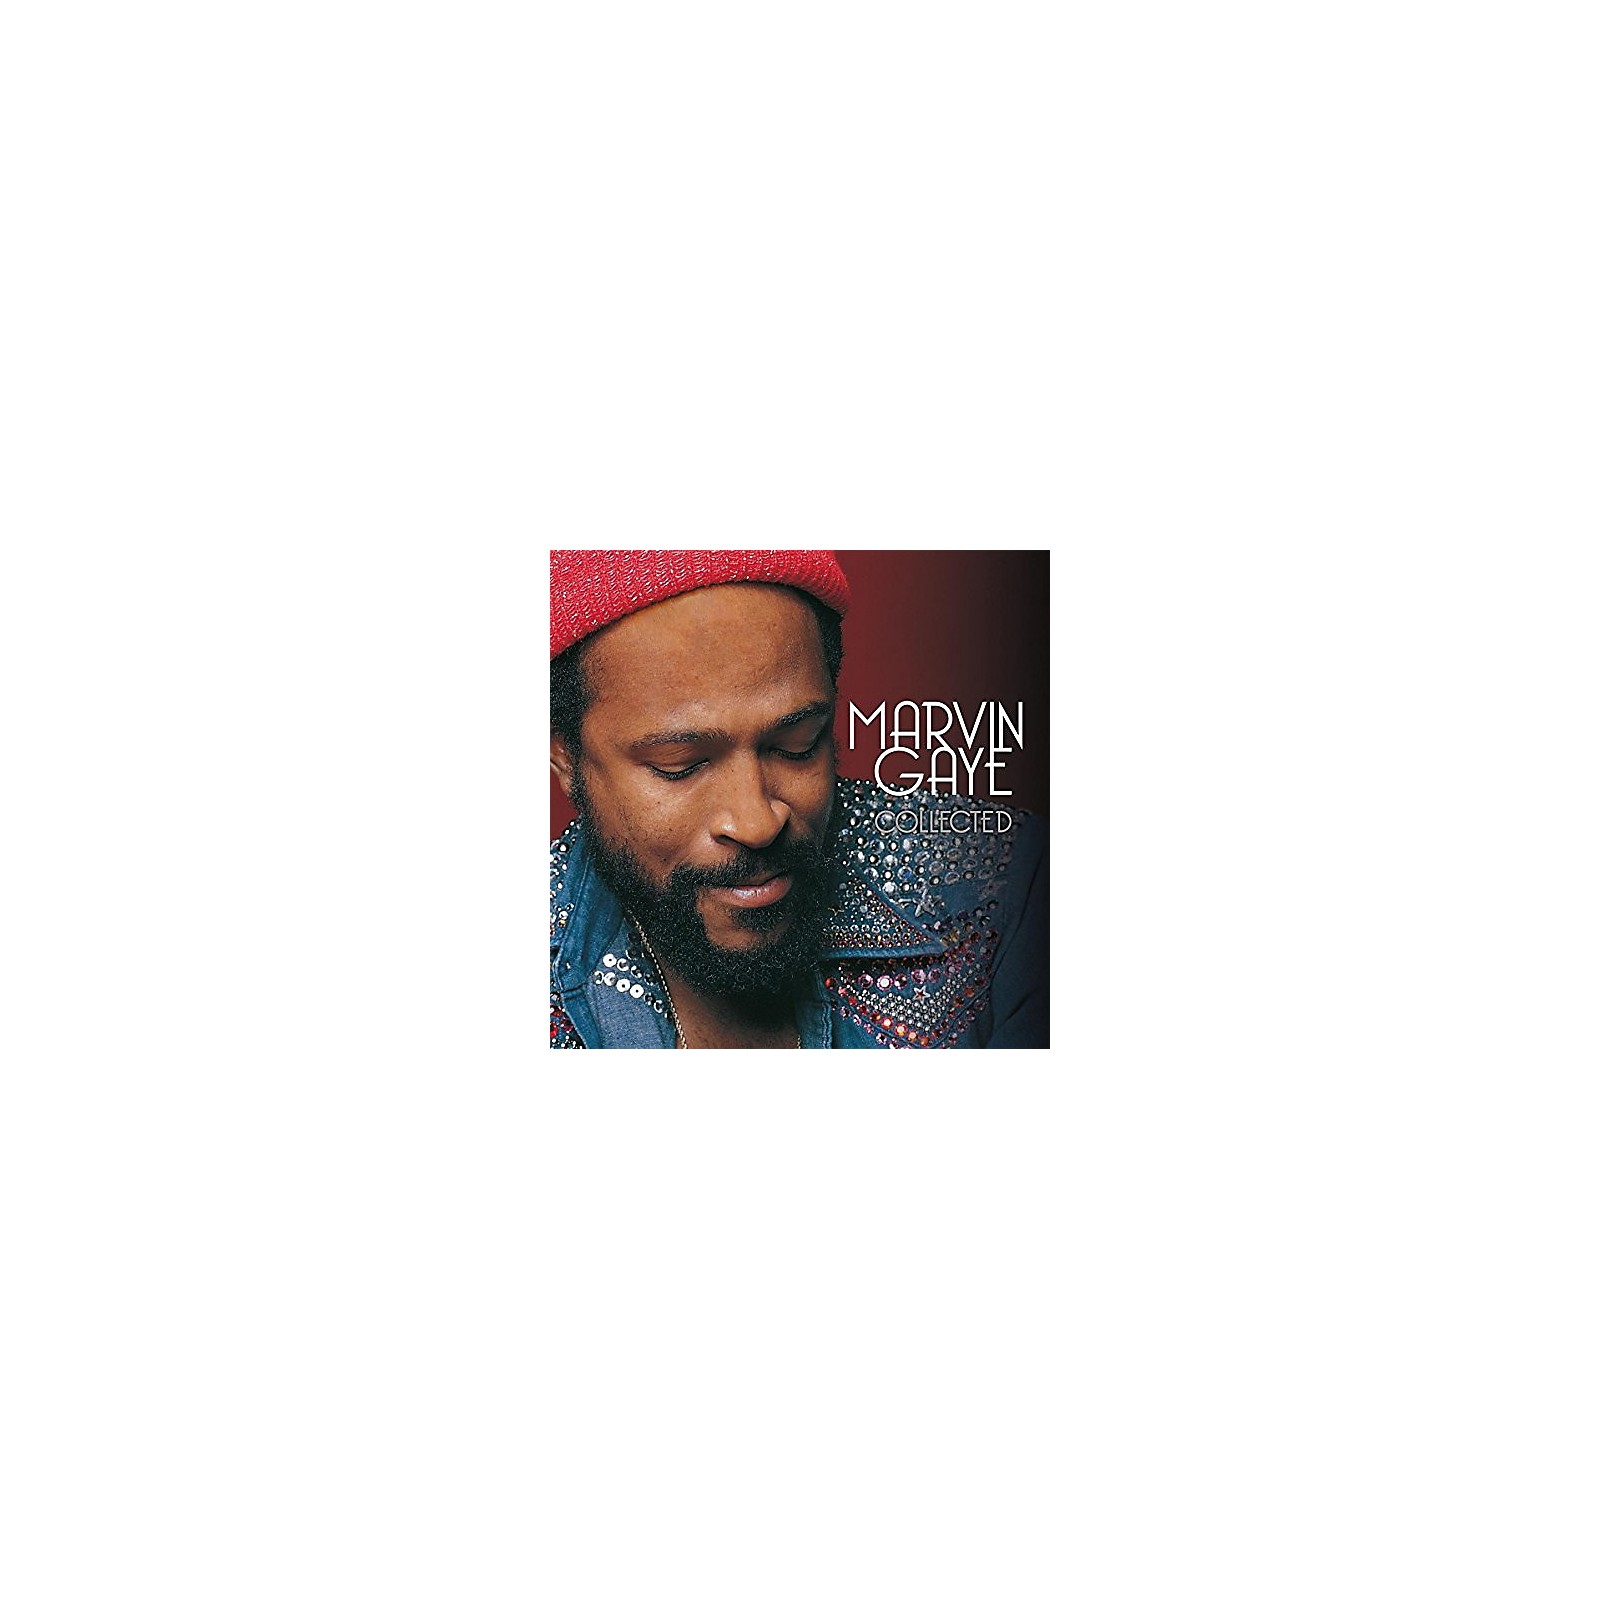 Alliance Marvin Gaye - Collected